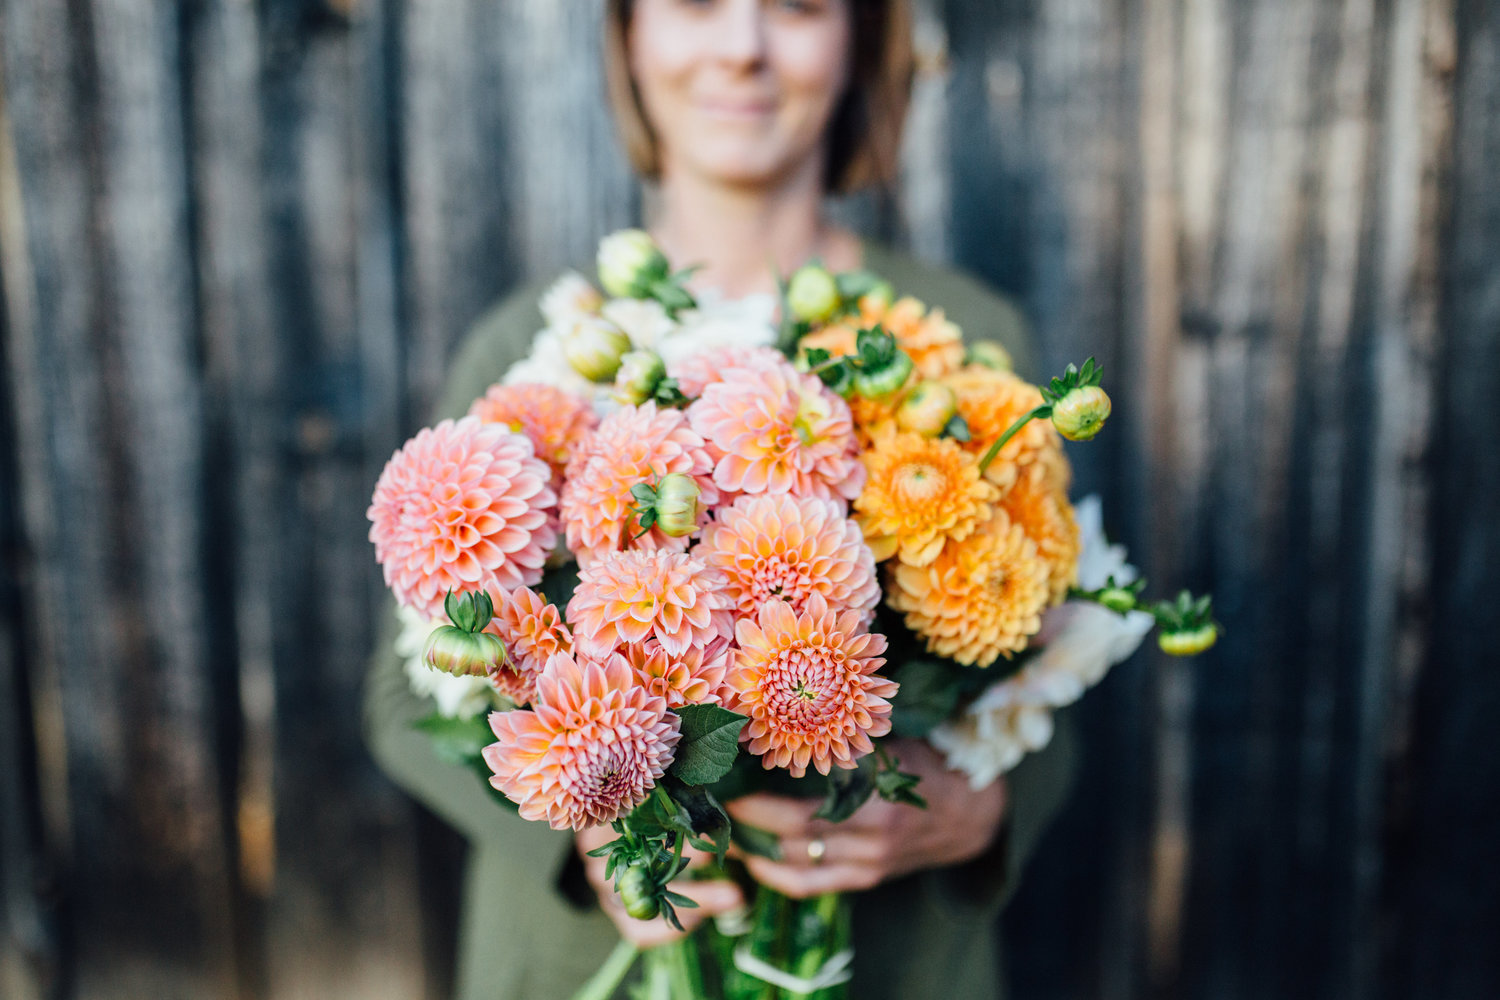 Carroll county maryland grown flowers we grow a diverse variety of cut flowers using natural methods on 1 acre in northern maryland for our wedding design izmirmasajfo